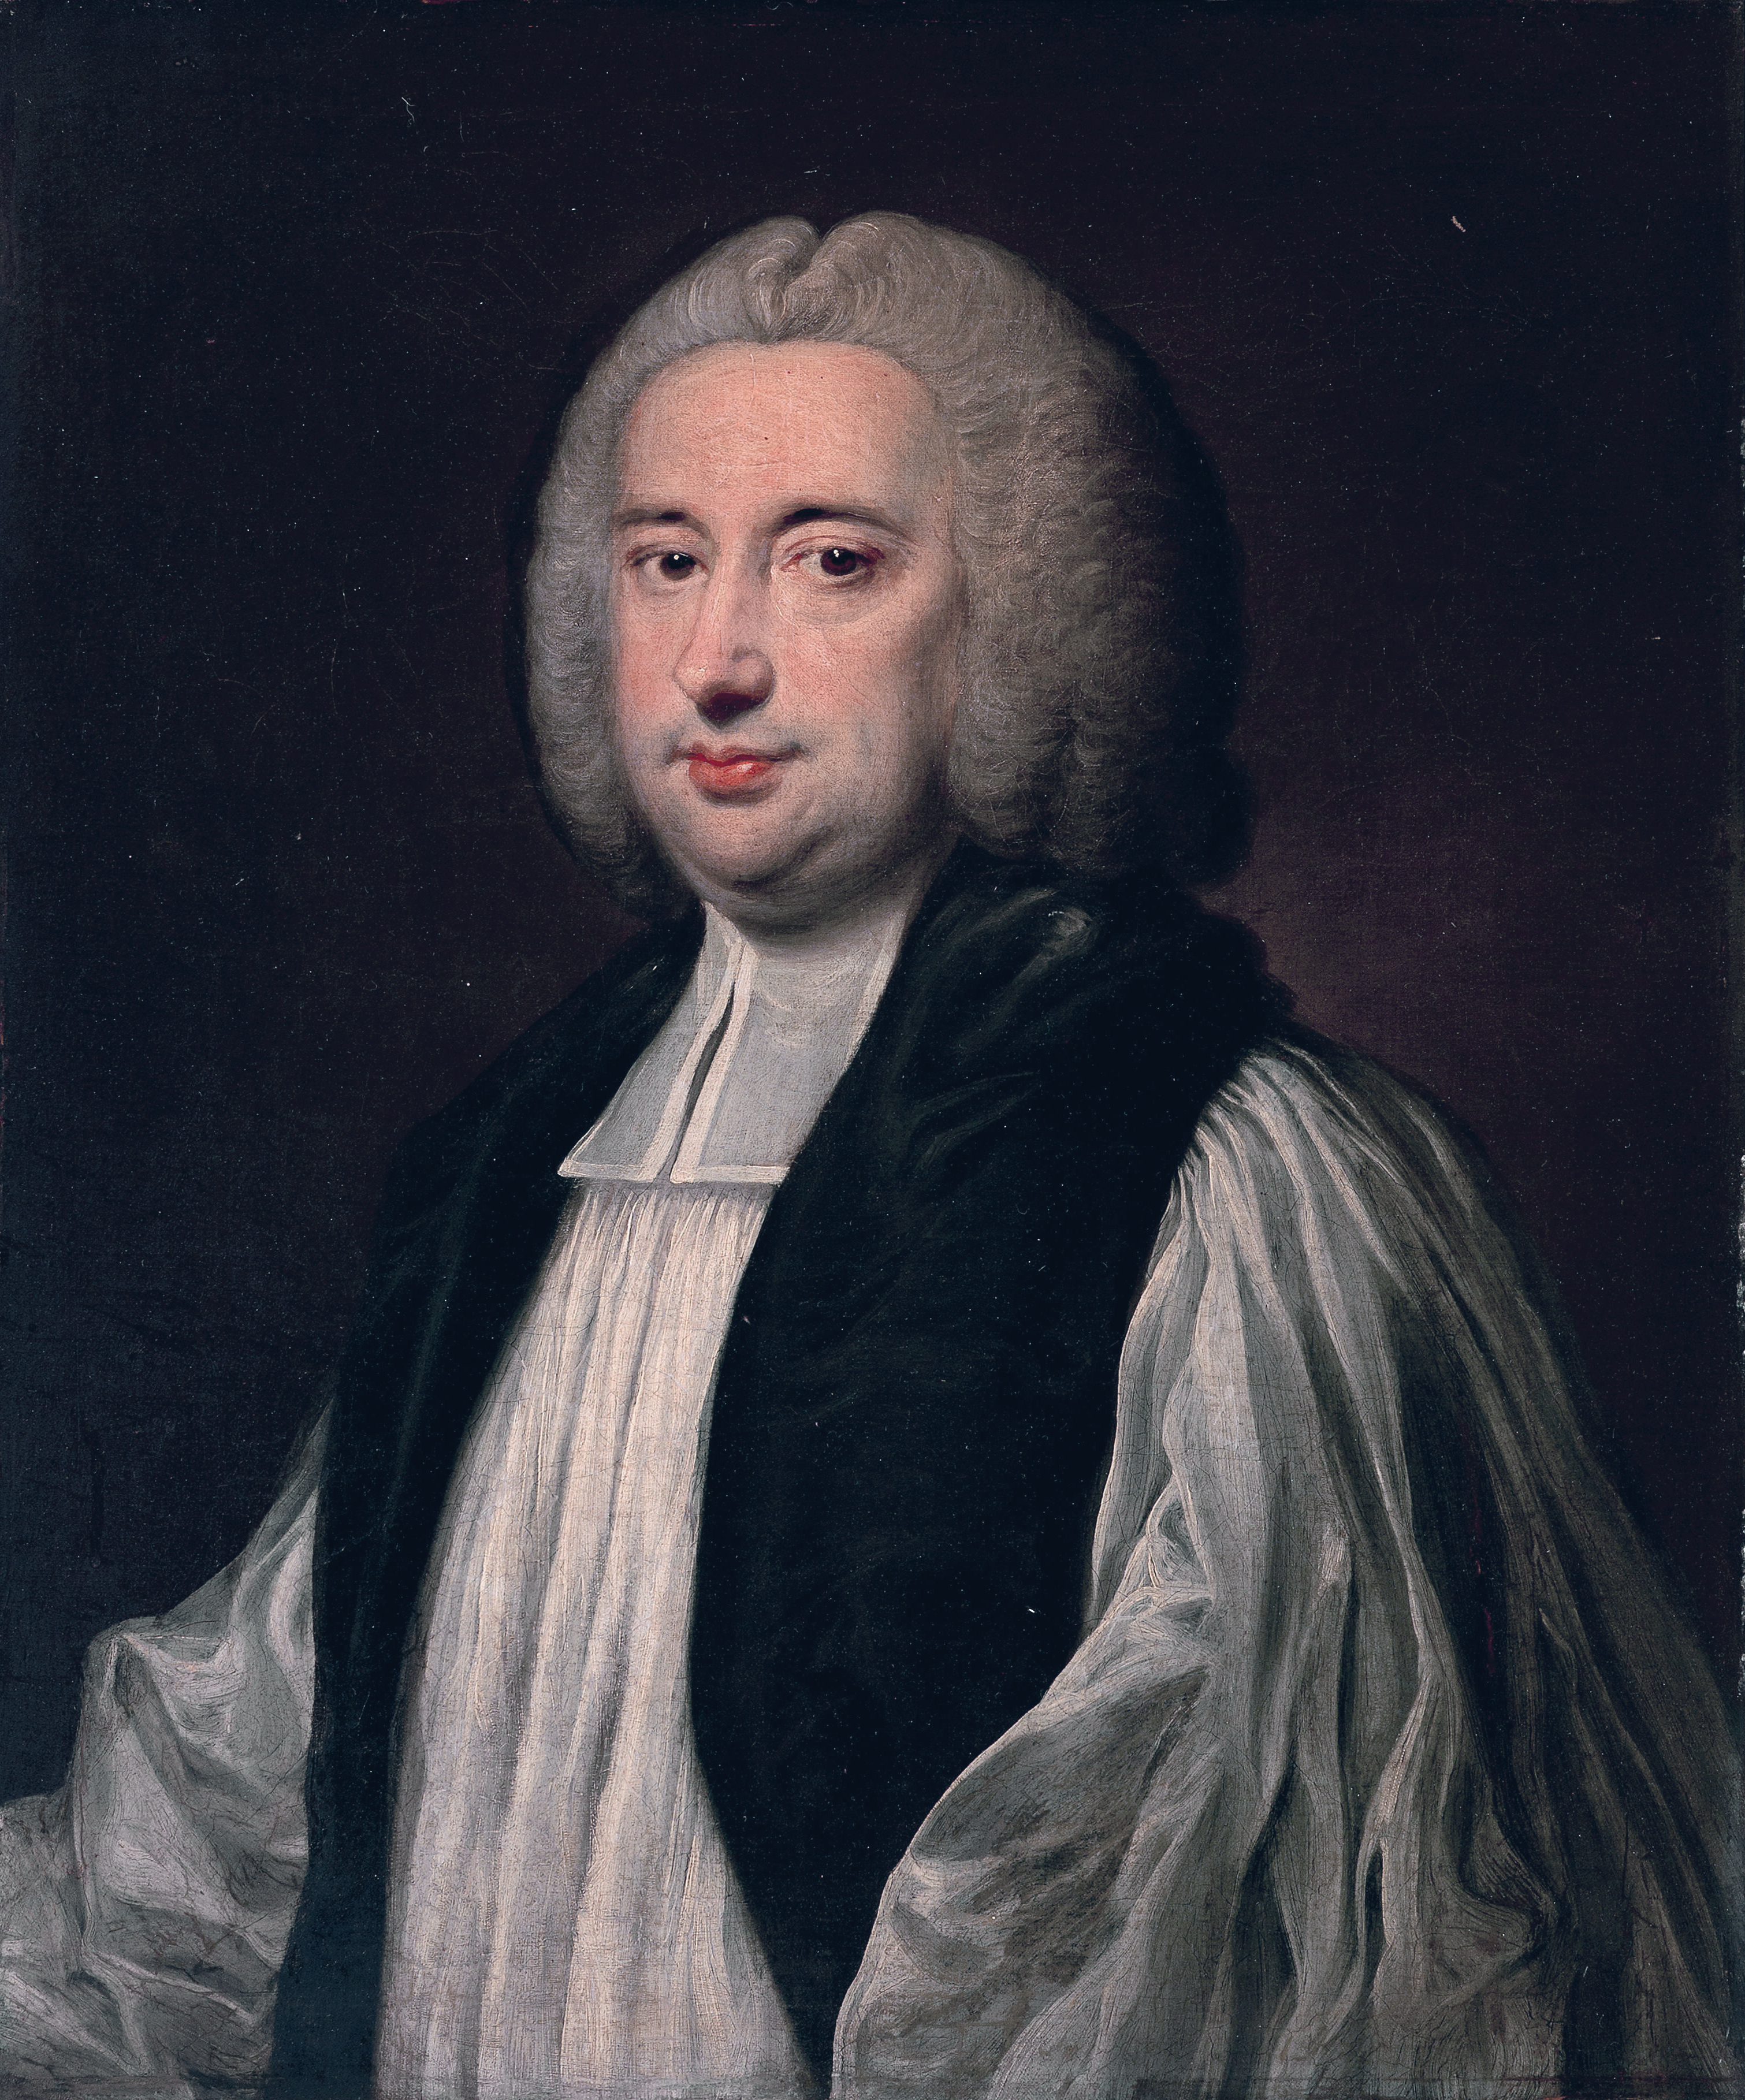 File:Richard Terrick (1710-1777), Bishop of London, by Nathaniel